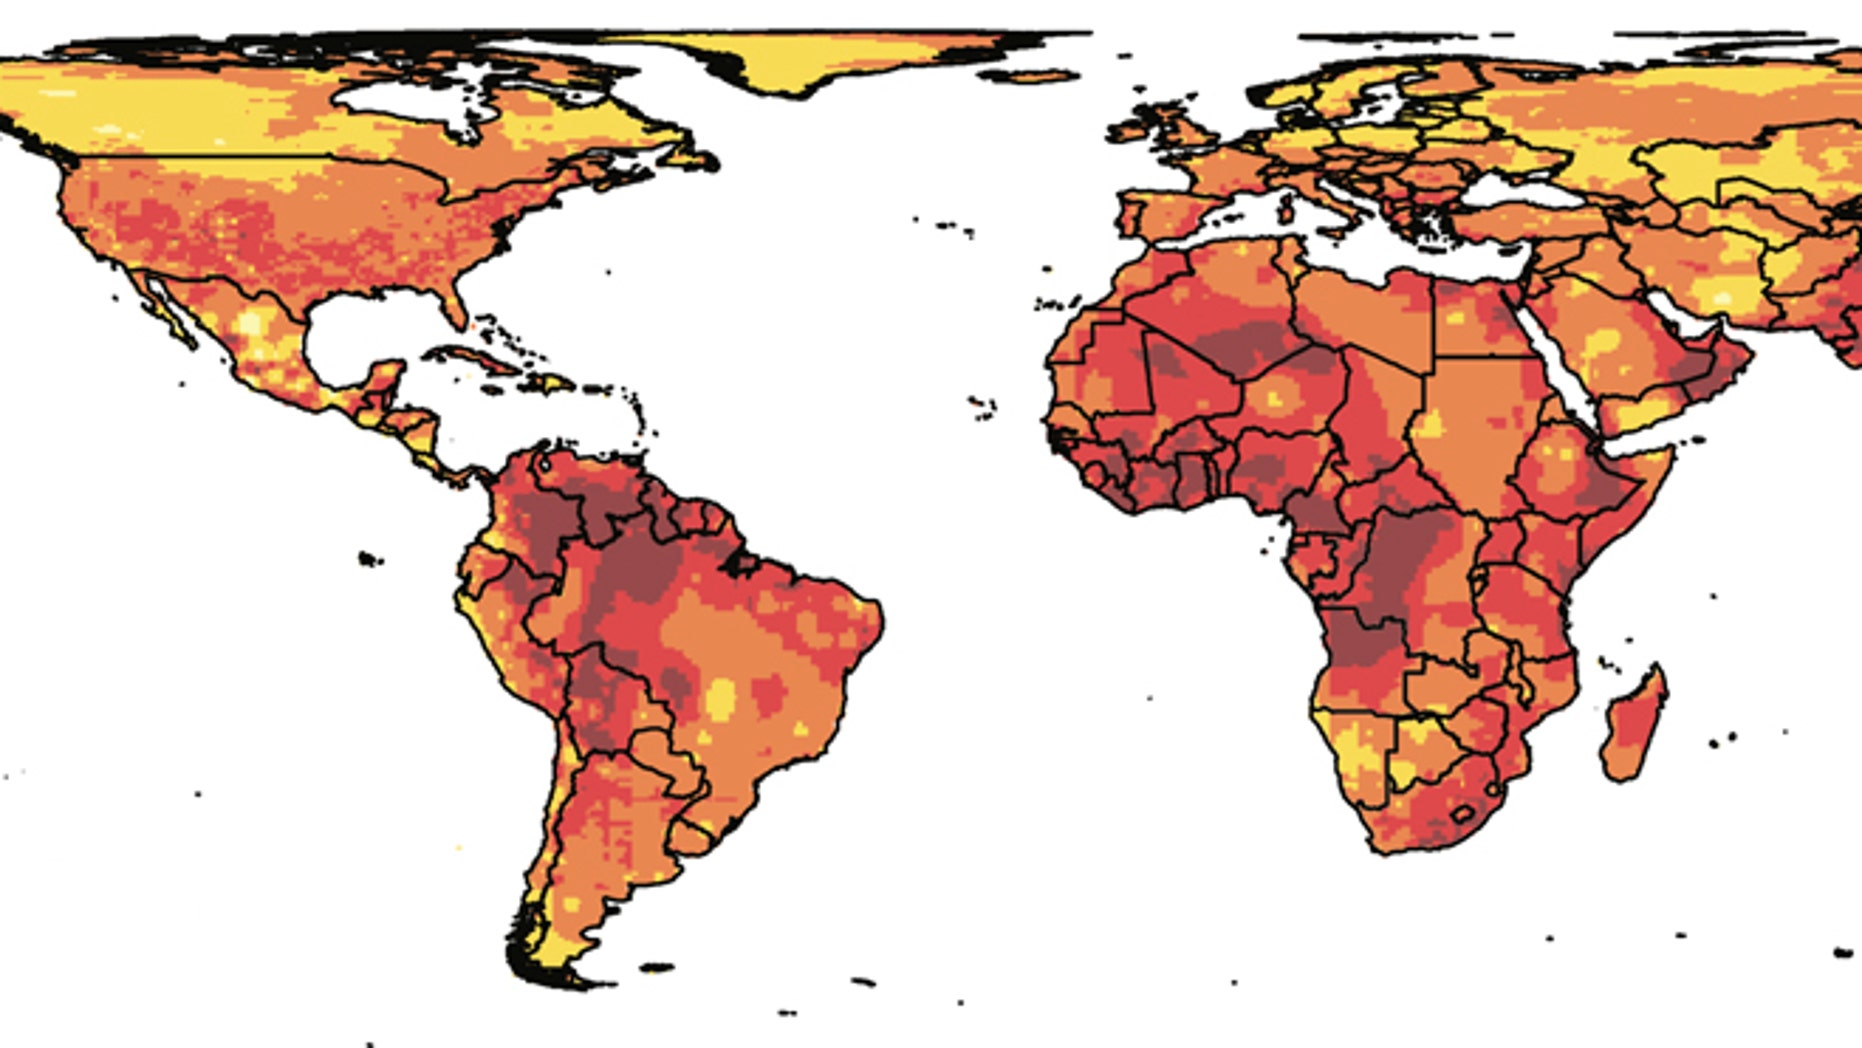 Researchers from Princeton University and the University of California-Berkeley suggest that more human conflict is a likely outcome of climate change. The researchers found that even one standard-deviation shift -- the amount of change from the local norm -- in temperature and precipitation greatly increase the risk of personal violence and social upheaval. Climate-change models predict an average of 2 to 4 standard-deviation shifts in global climate conditions by 2050 (shown here with darker colors), with 4 representing the greatest change in normal conditions.